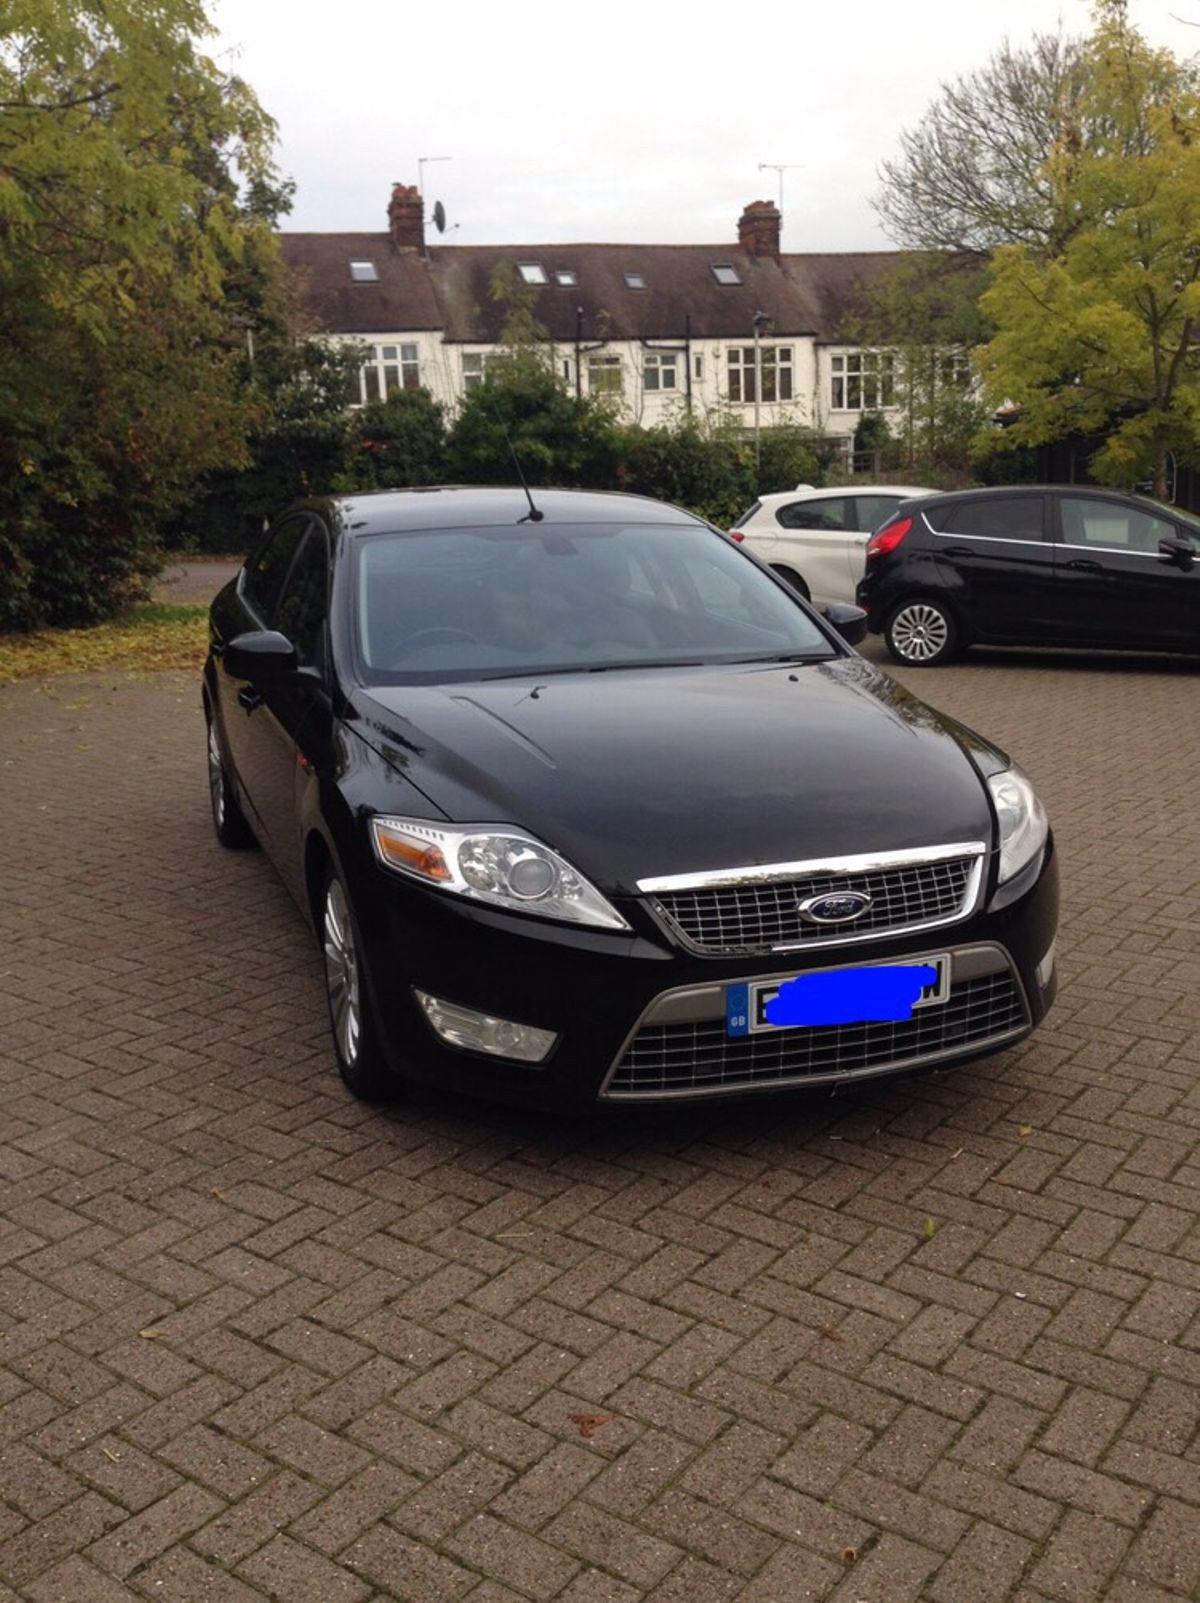 Cat D Cars for Sale Near Me Elegant ford Mondeo Cat D Repaired Quick Sale In N19 London for £2 500 00